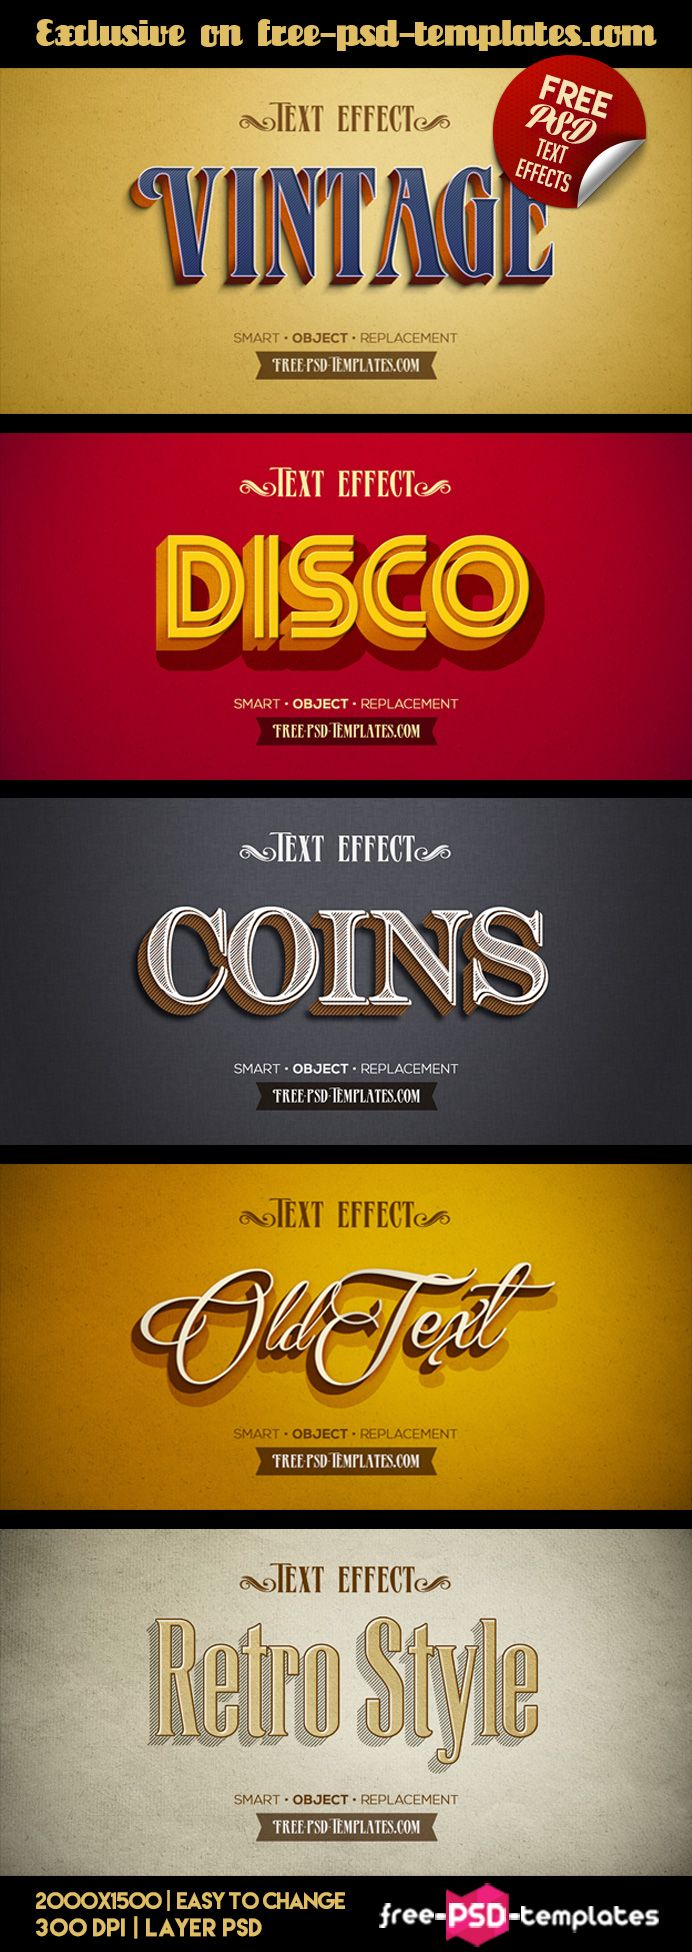 As you know, Text Effects are always important for creating beautiful design or any project. It can be an interesting addition or even the main ideas of any project. Download these 5 retro text effects for your needs and enjoy the results!